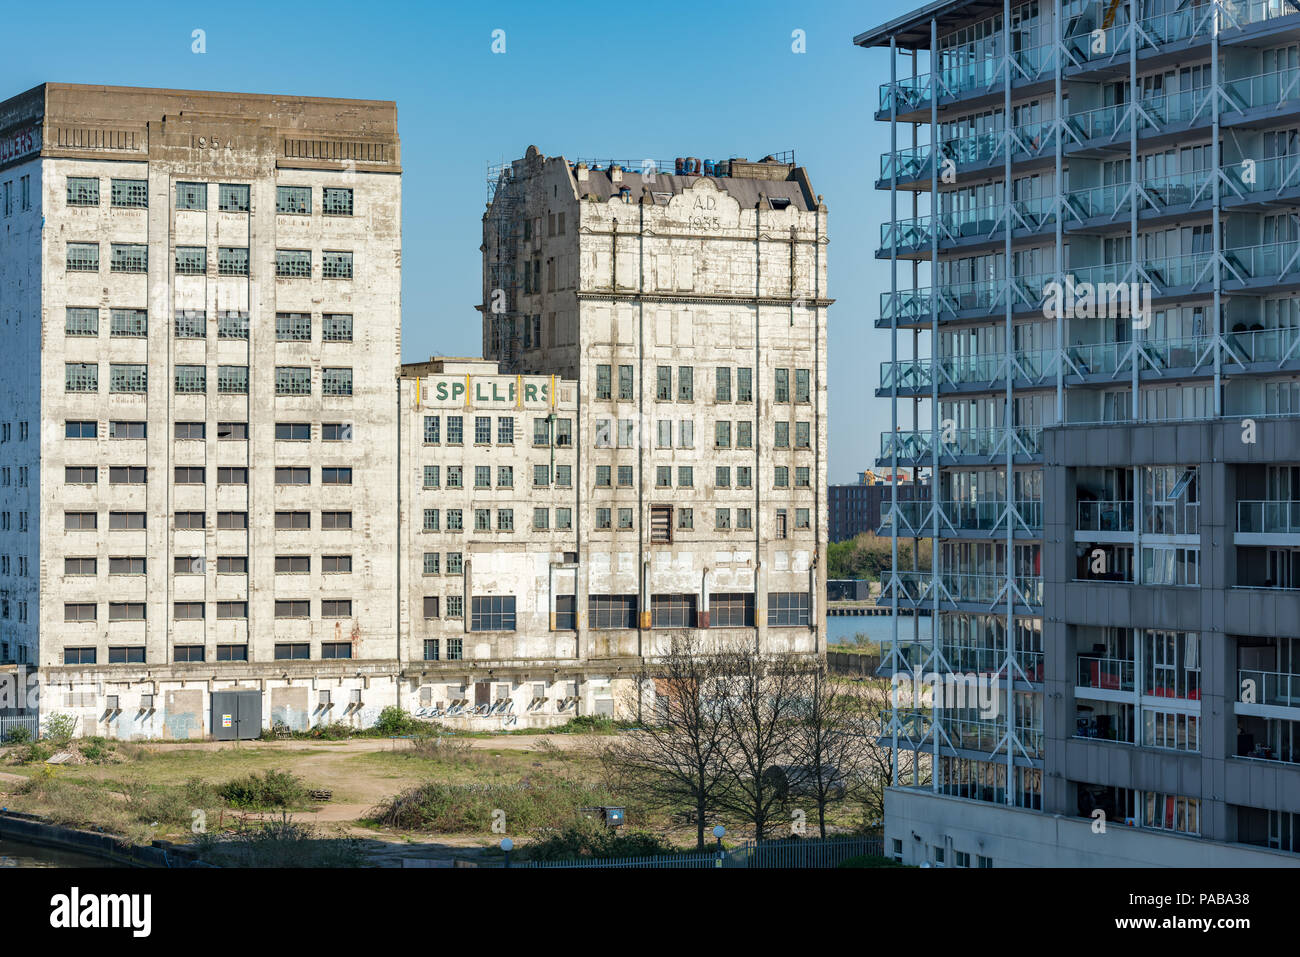 Old and new. Spillers Millennium Mills in West Silvertown awaiting its planned and long delayed redevelopment - Stock Image